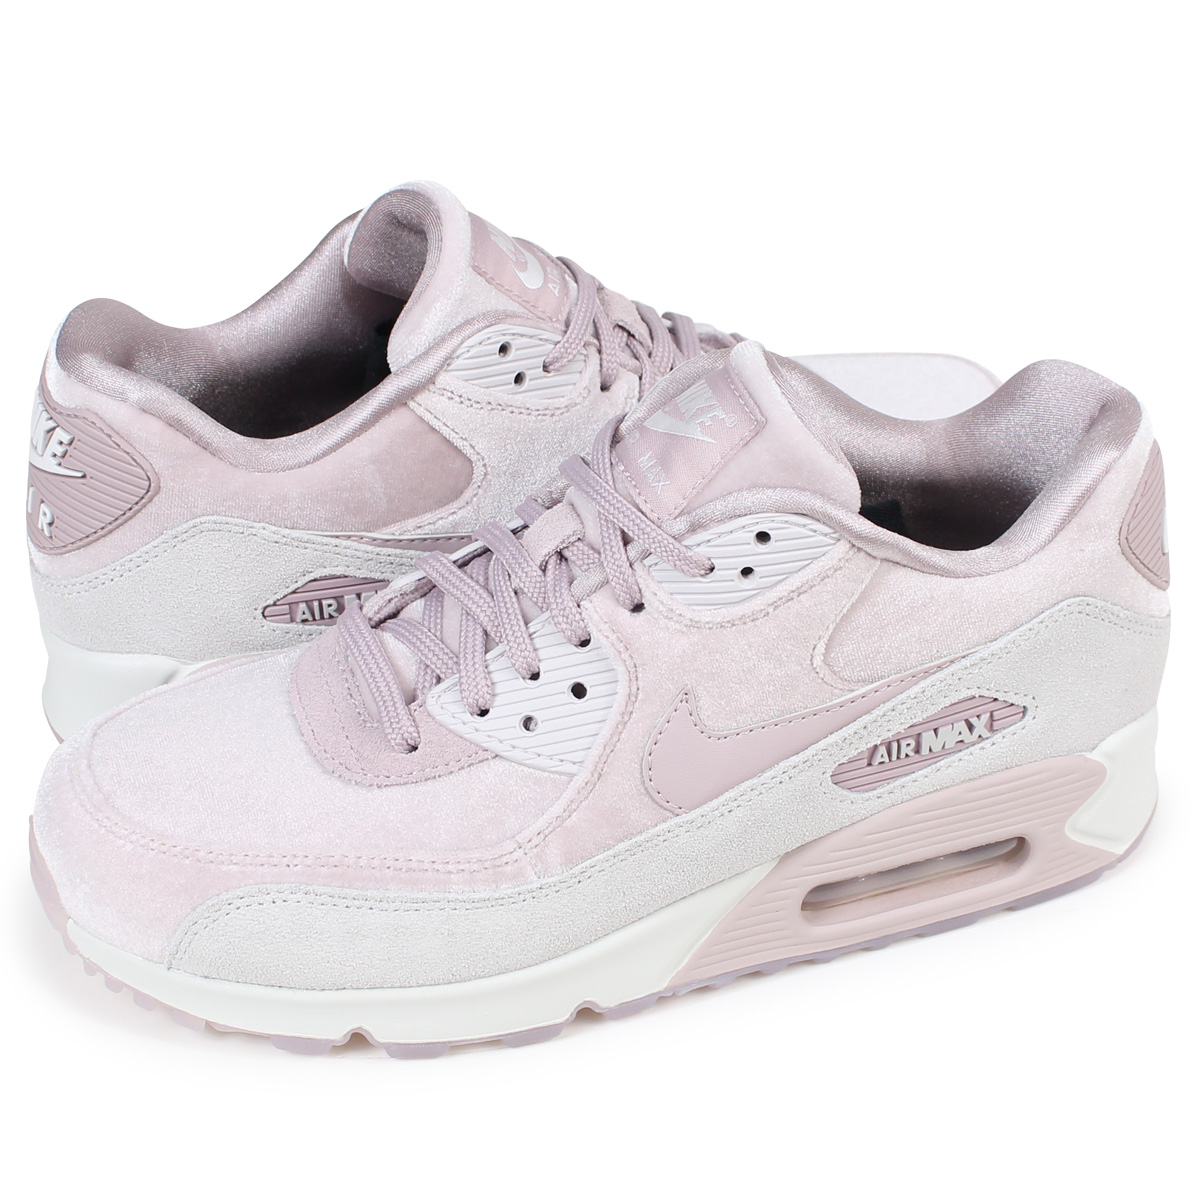 NIKE WMNS AIR MAX 90 LX Kie Ney AMAX 90 Lady's sneakers 898,512 600 shoes pink [19 Shinnyu load]